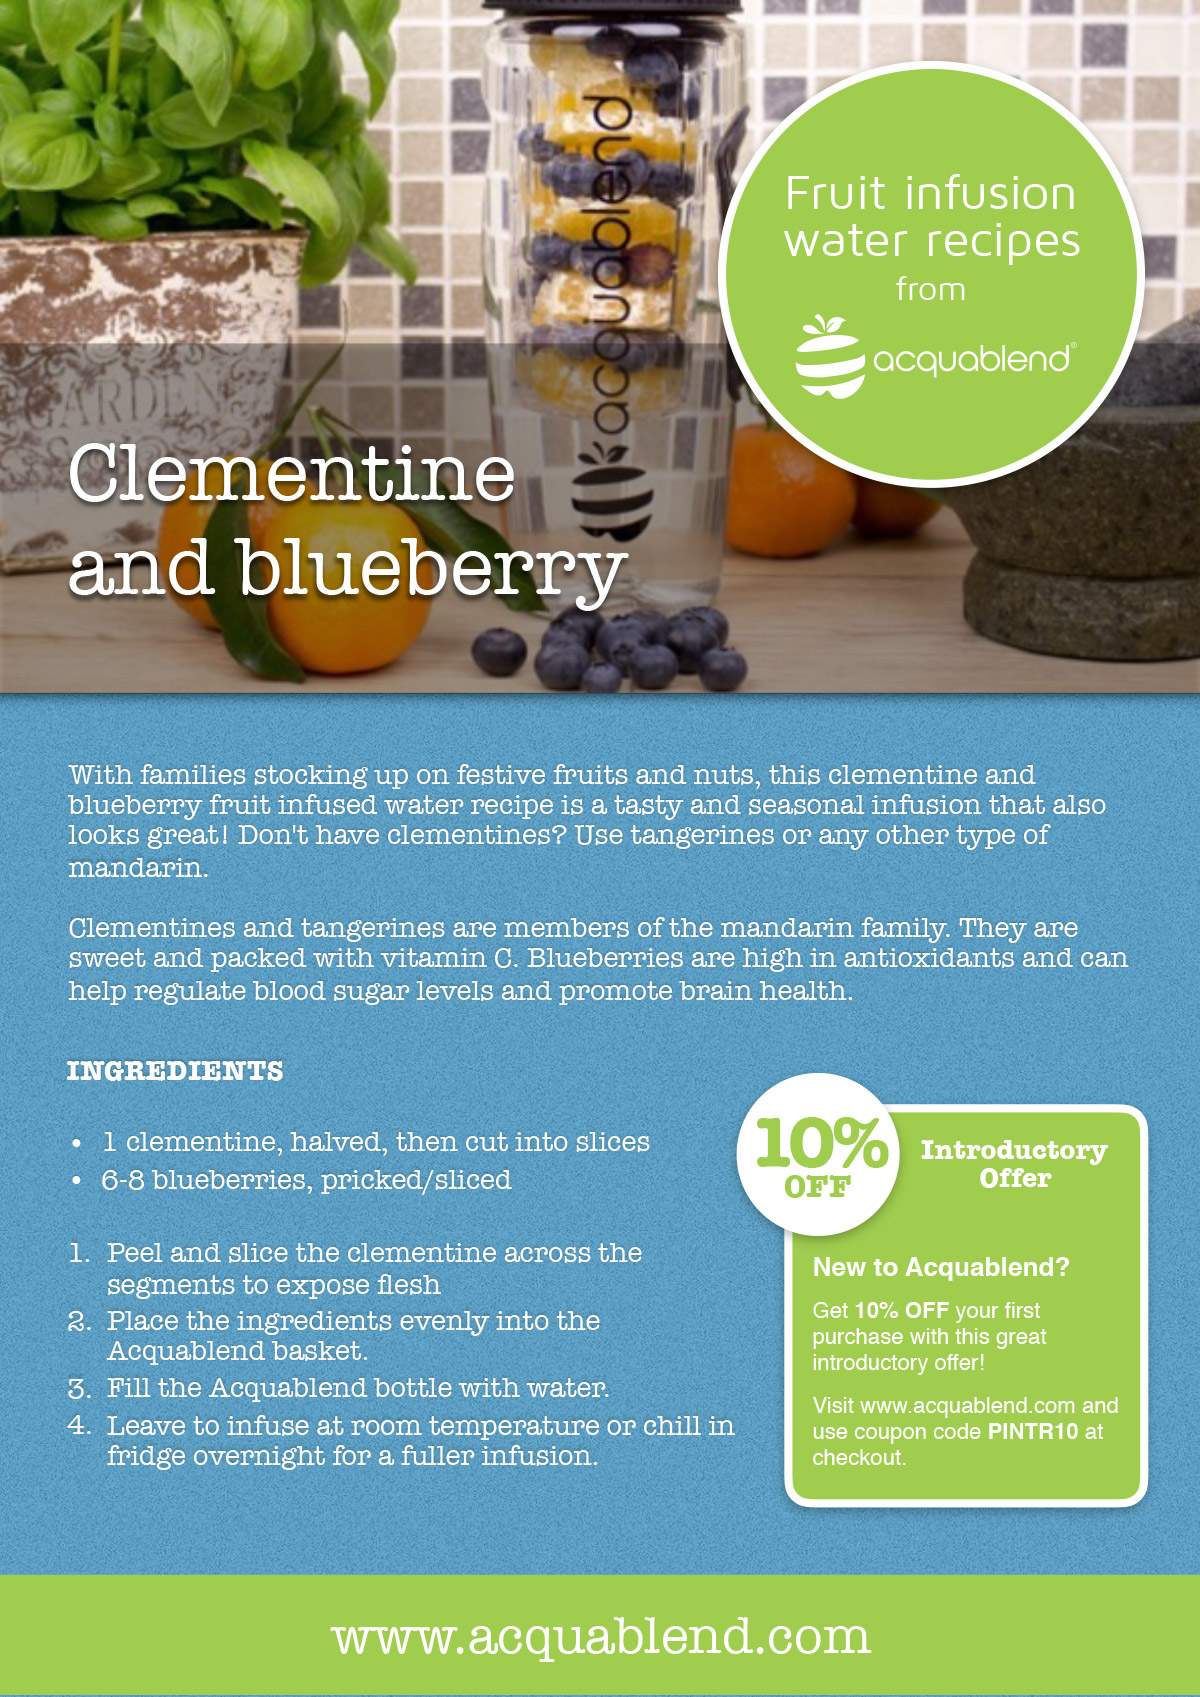 Clementine and blueberry fruit infused water recipe.